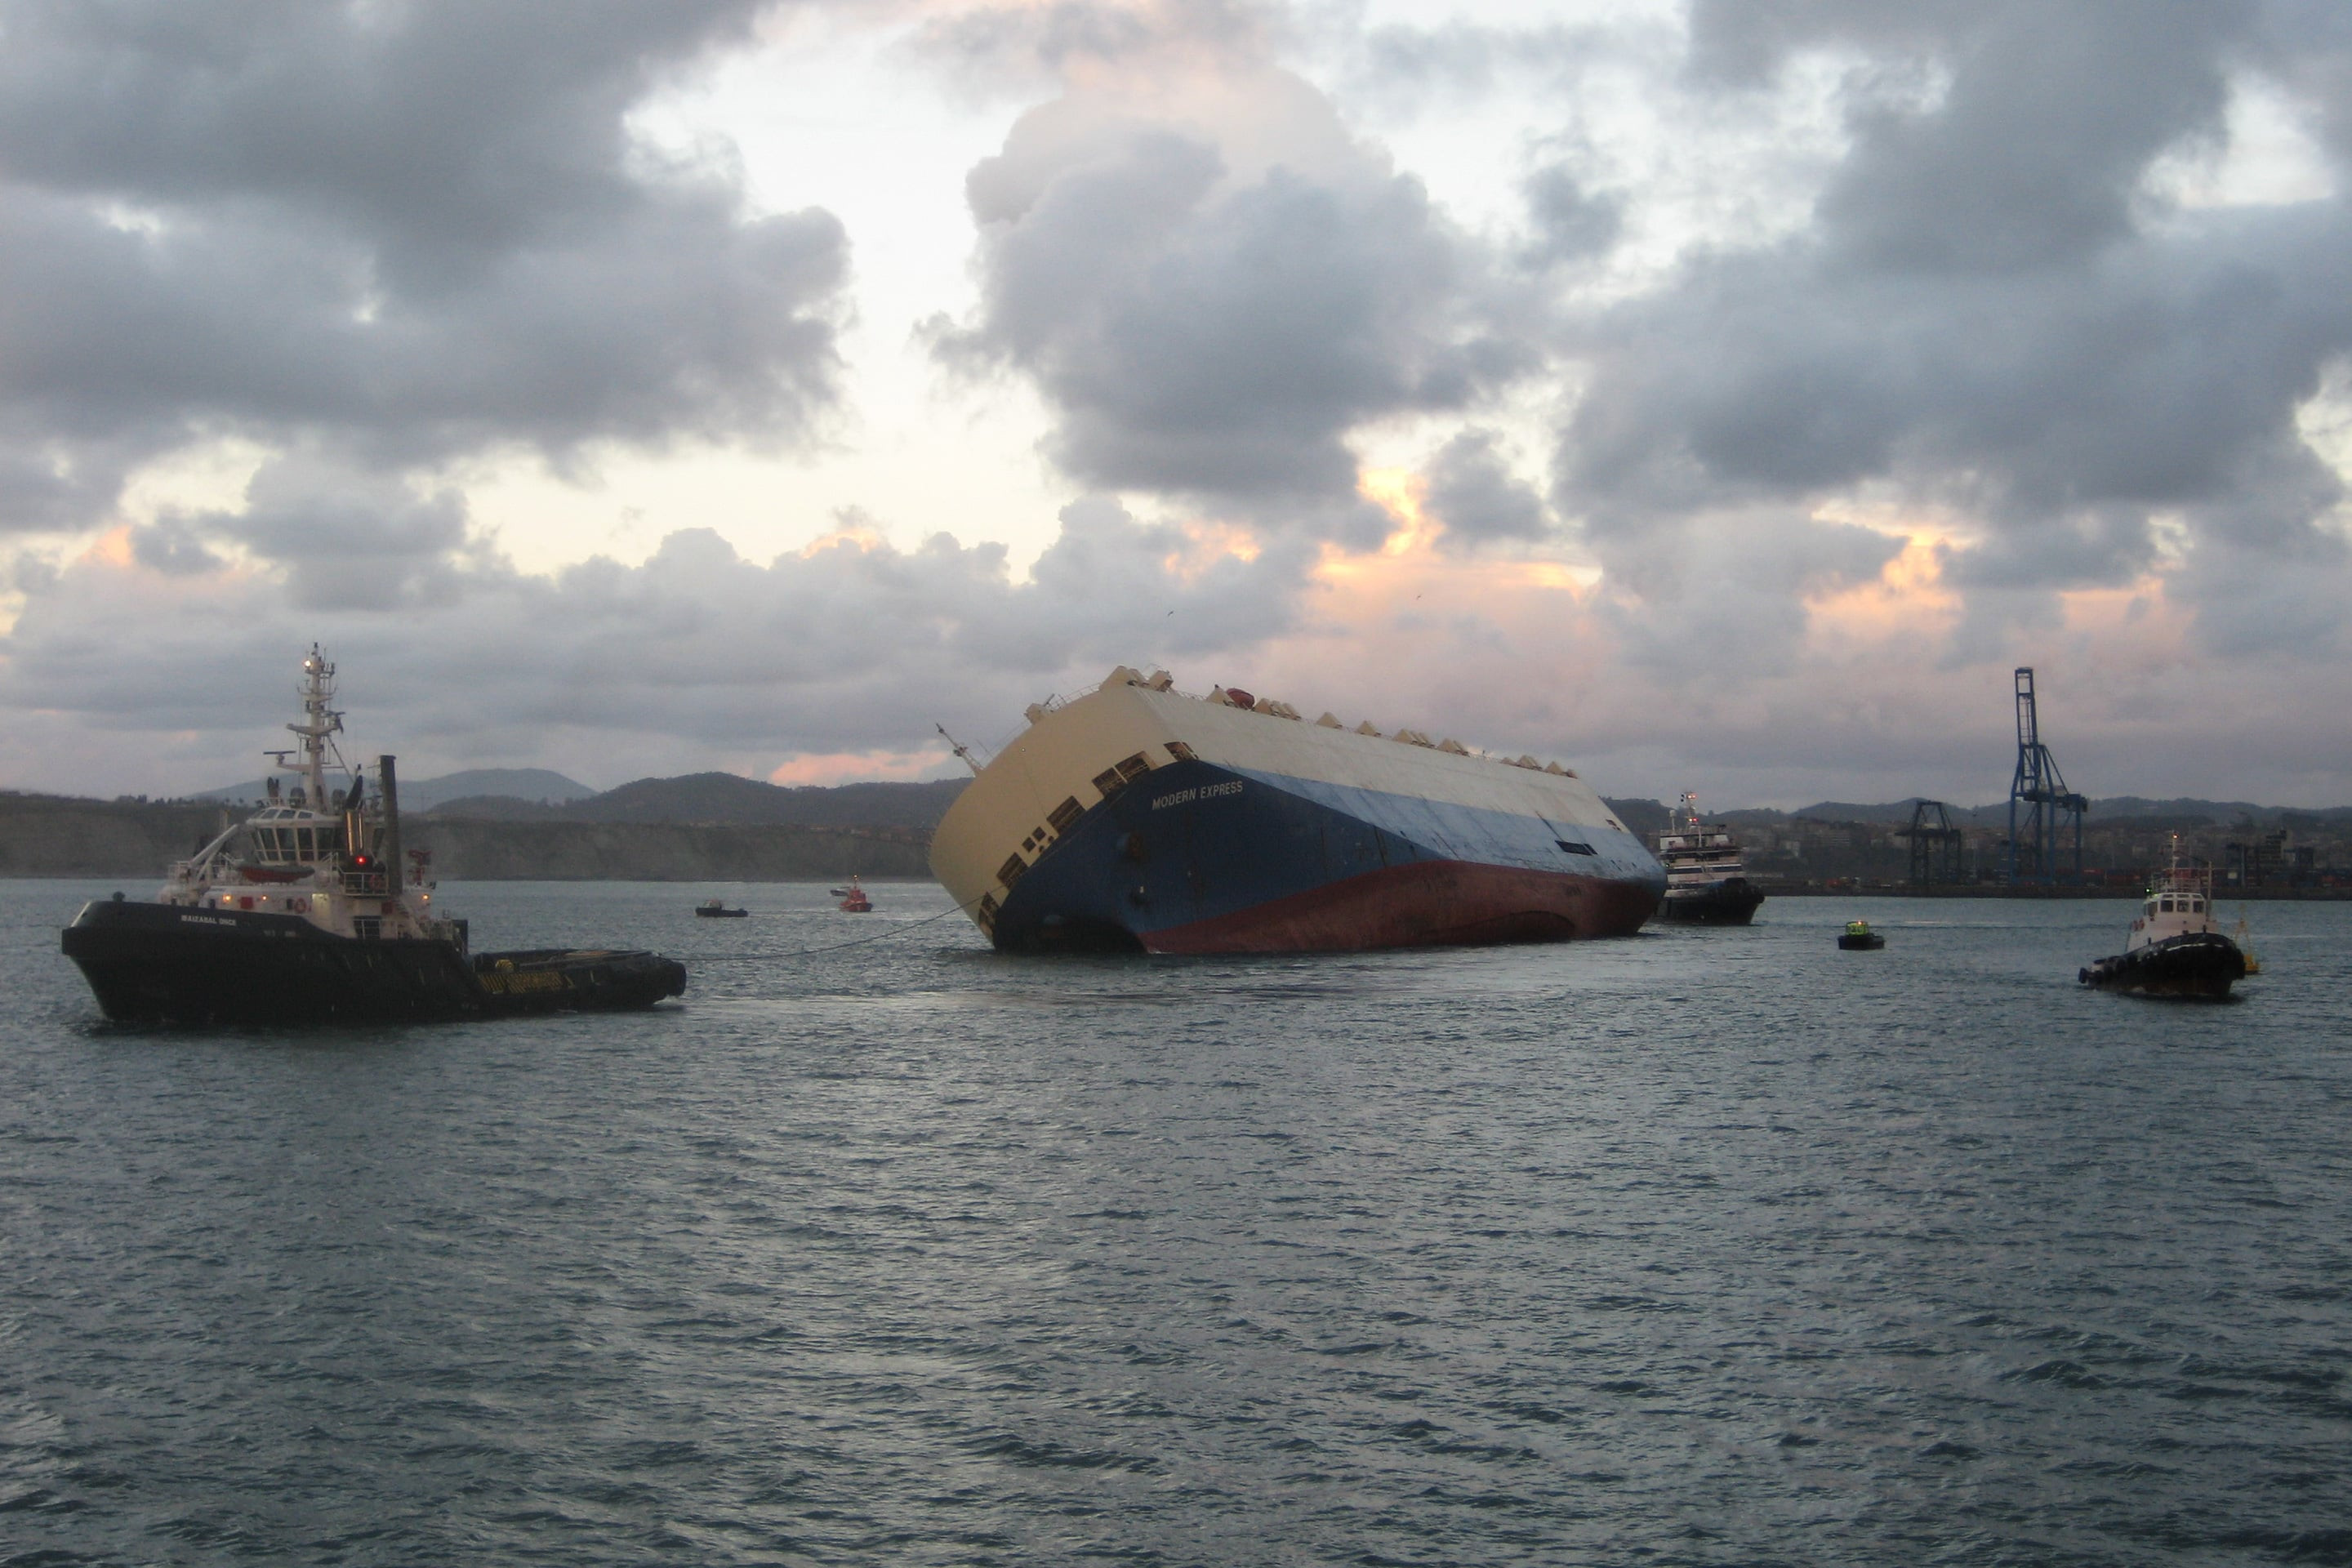 Four tugs take the Modern Express into the Port of Bilbao